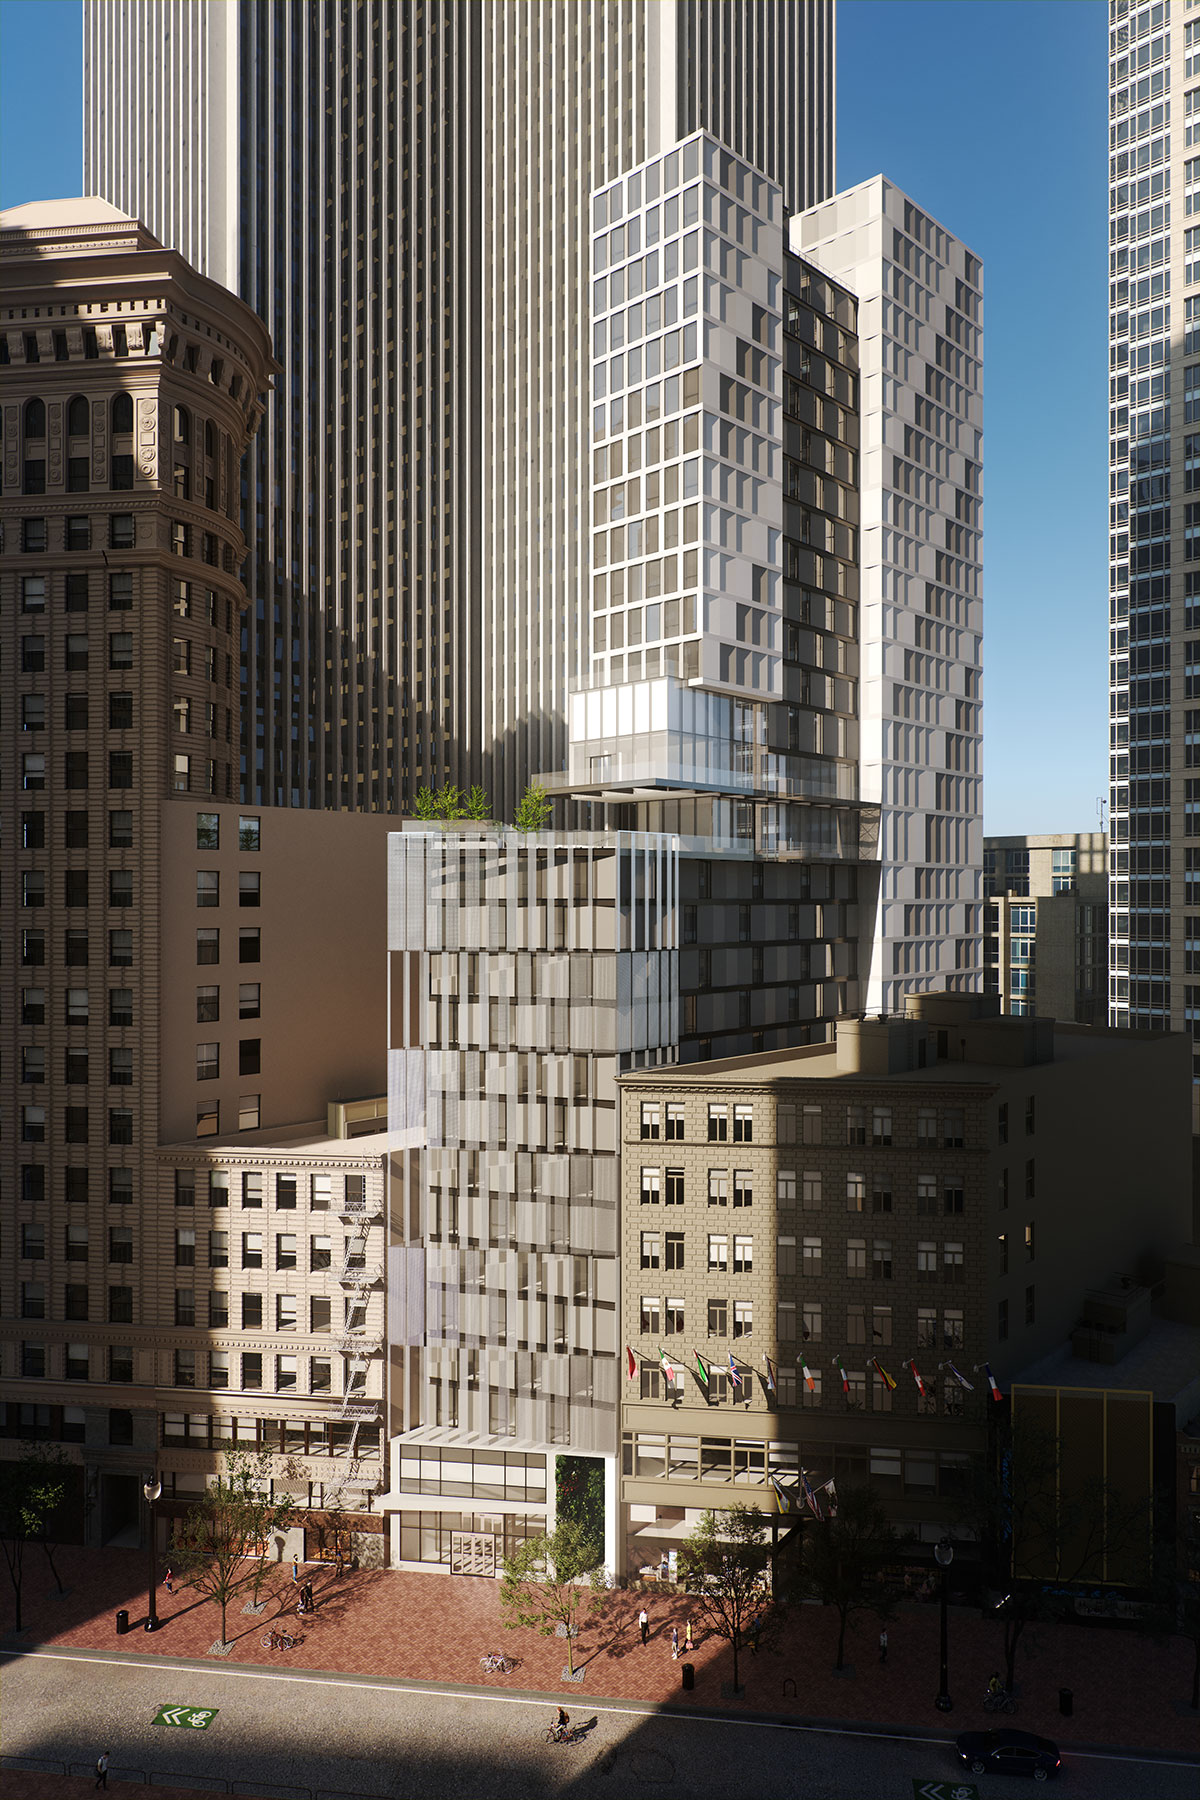 Aerial view of the San Francisco modular project located at 570 Market Street on the Financial District of San Francisco, California designed by the architecture studio Danny Forster & Architecture